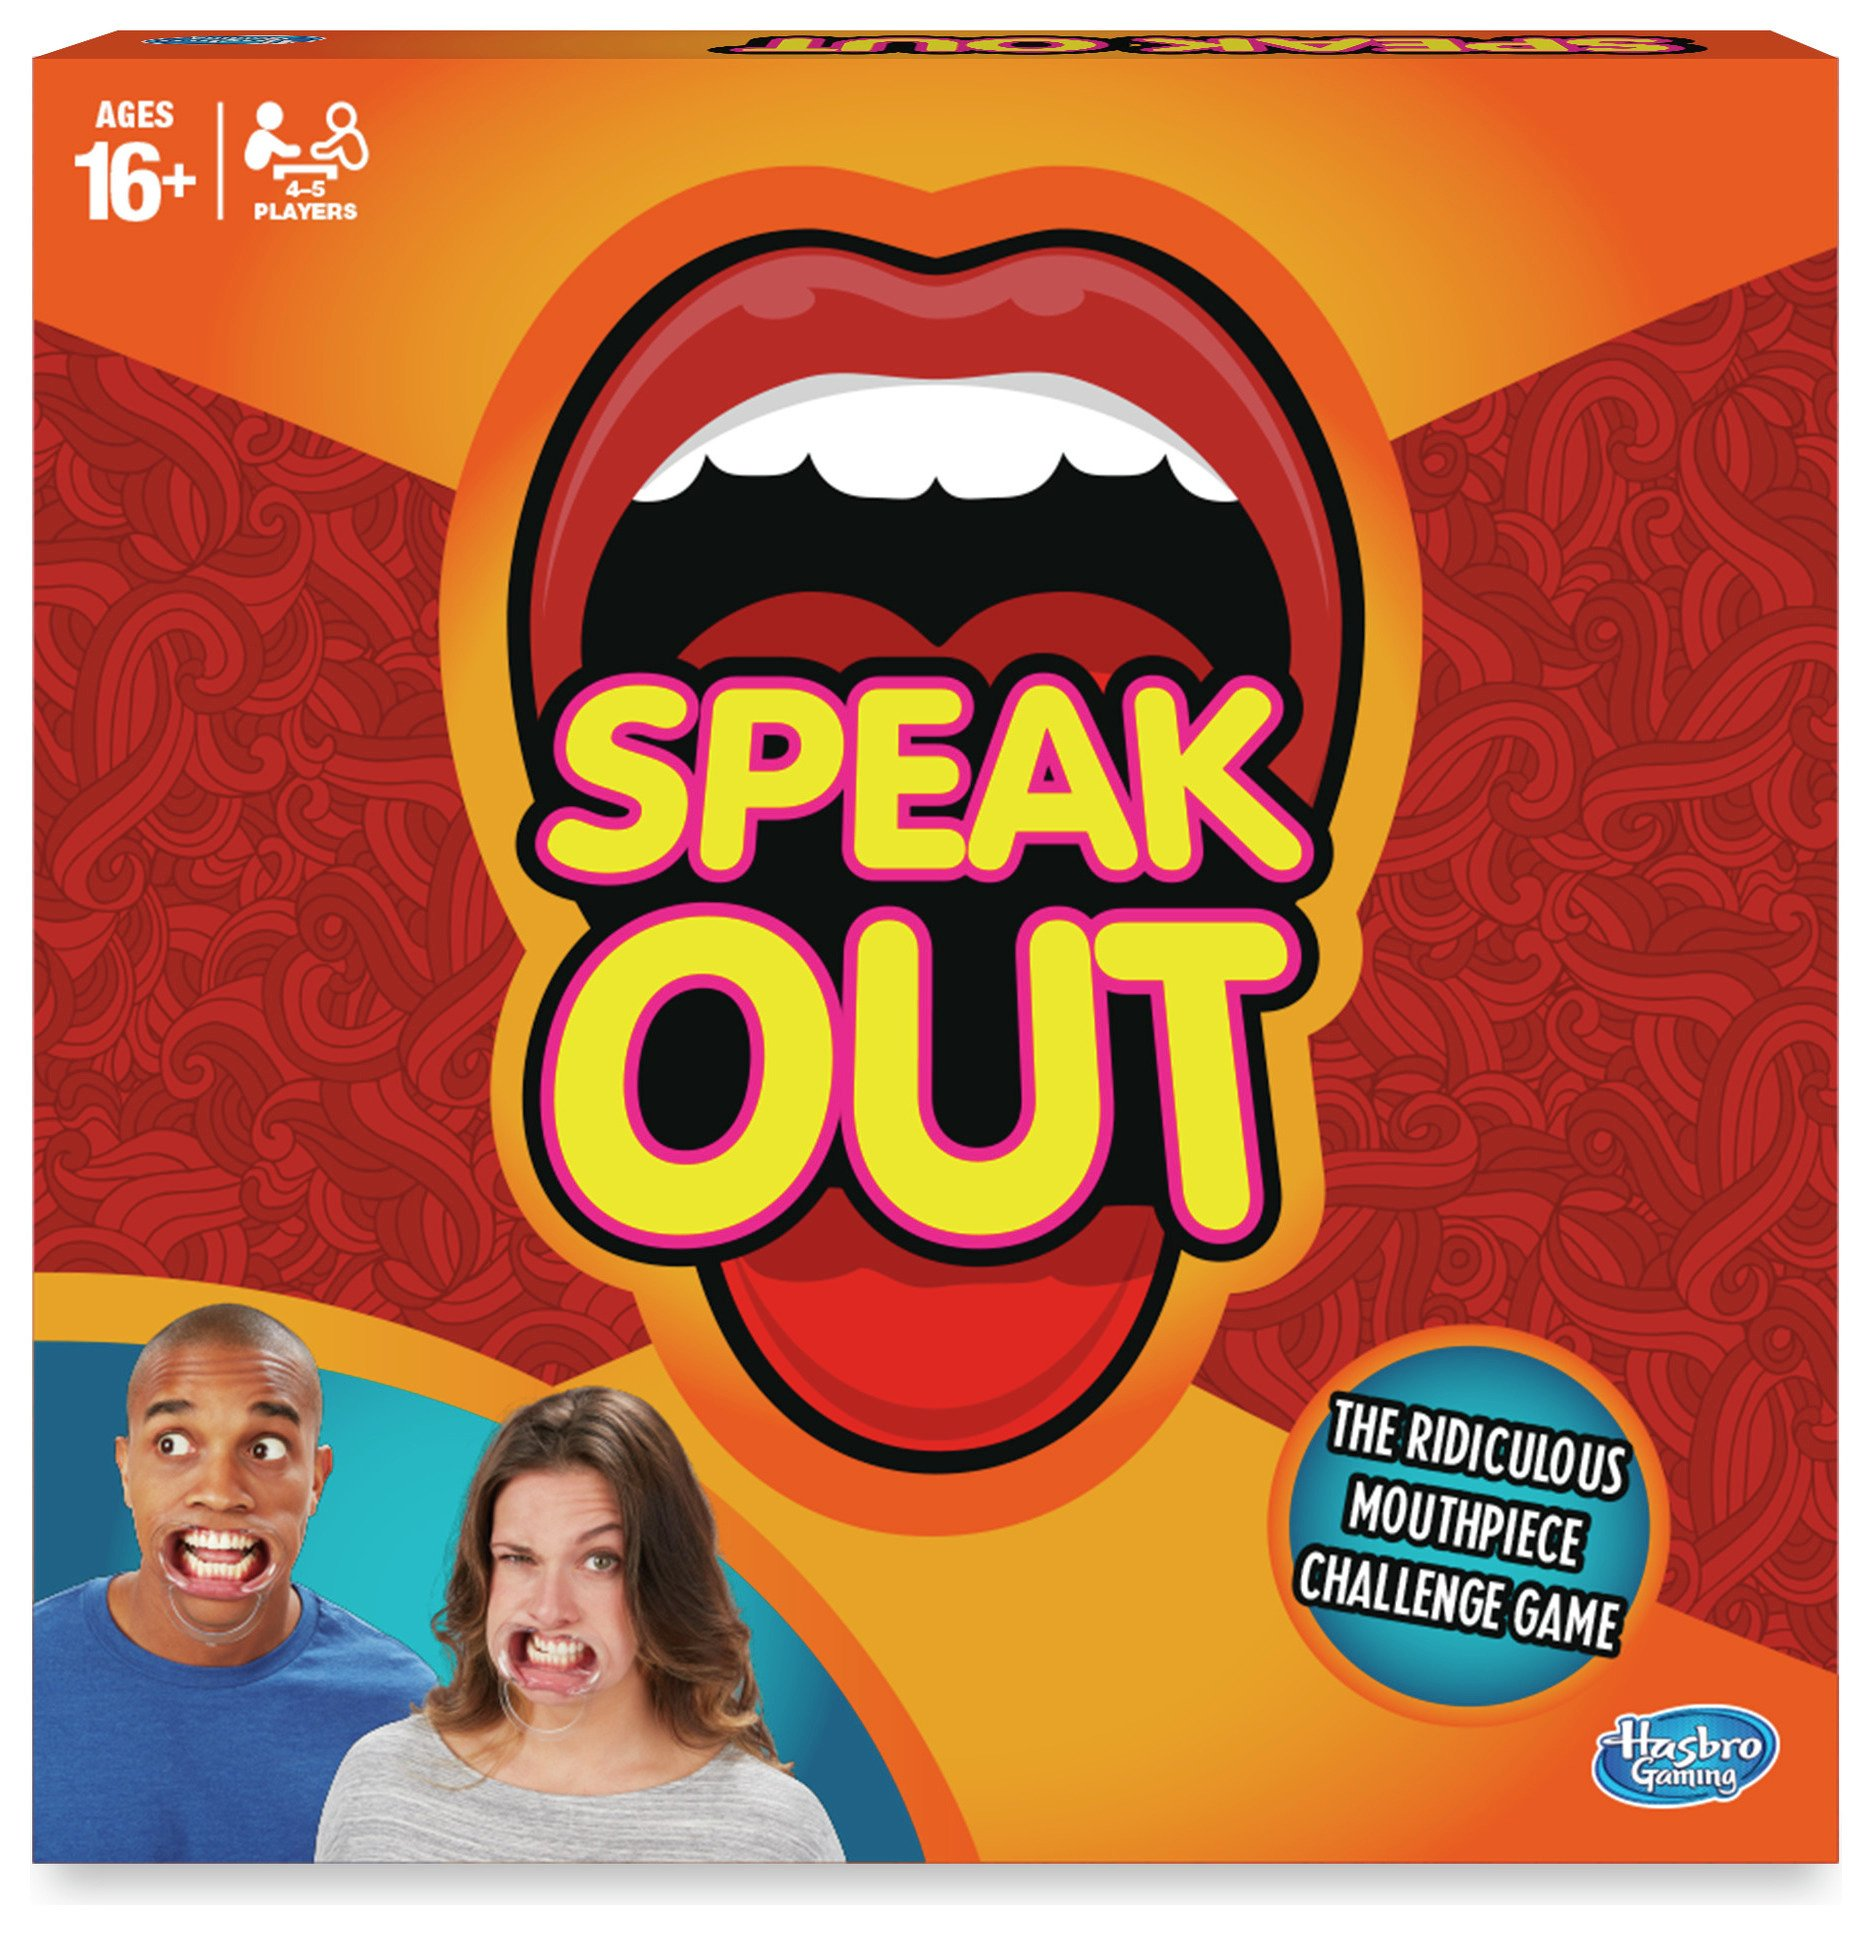 Image of Speak Out Game.